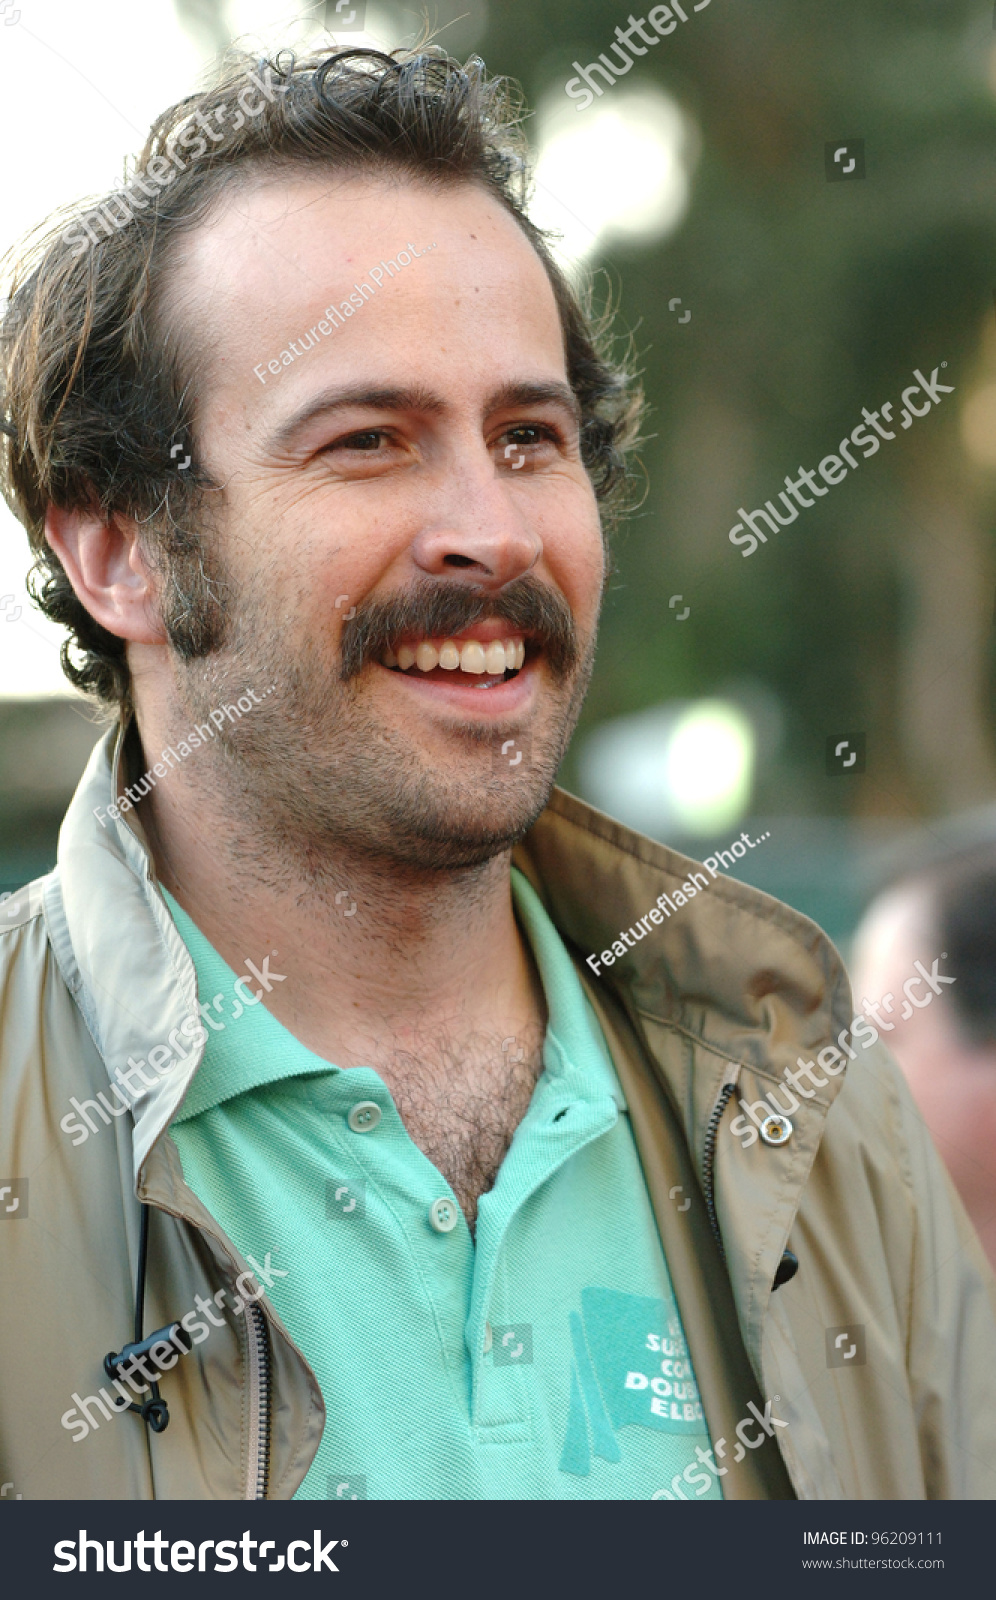 jason lee perryjason lee parry, jason lee scott, jason lee boxer, jason lee photography, jason lee 2016, jason lee skate, jason lee net worth, jason lee wwe, jason lee height, jason lee actor, jason lee imdb, jason lee skate 3, jason lee wikipedia, jason lee poker, jason lee 360 flip, jason lee jackson, jason lee perry, jason lee mma, jason lee ward, jason lee age